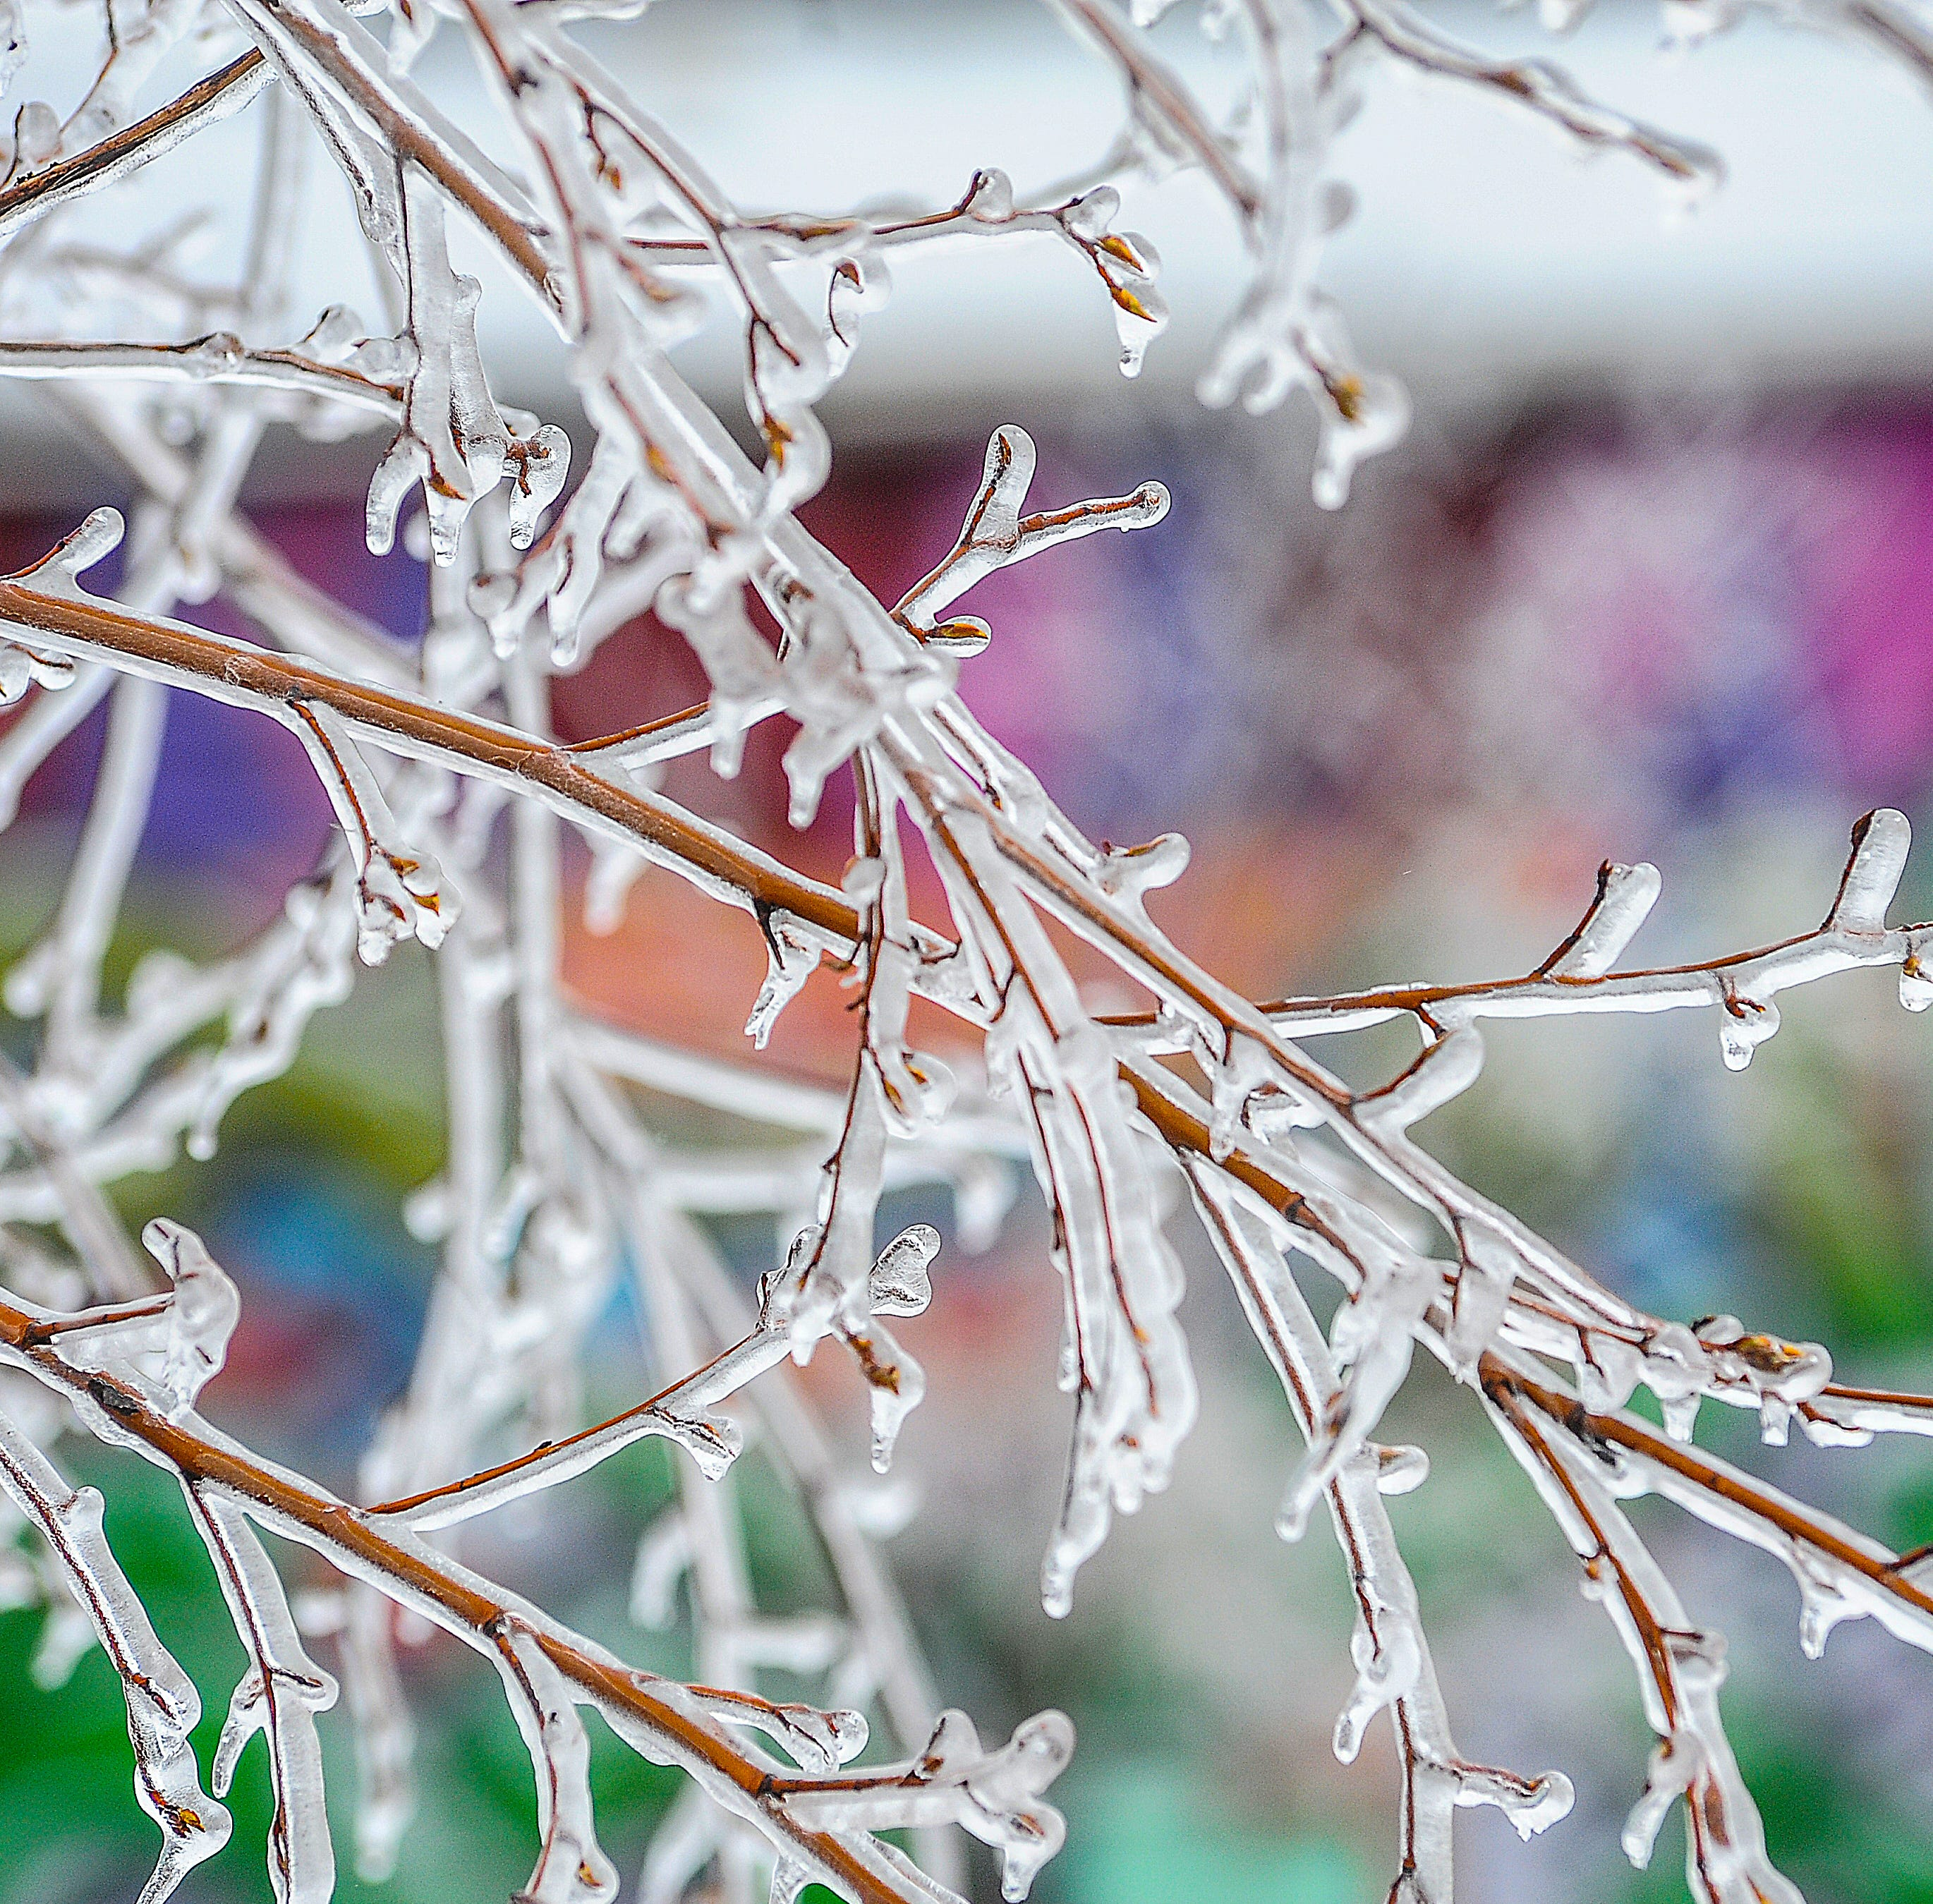 Freezing rain, sleet, snow in forecast for Lansing area Tuesday night, Wednesday